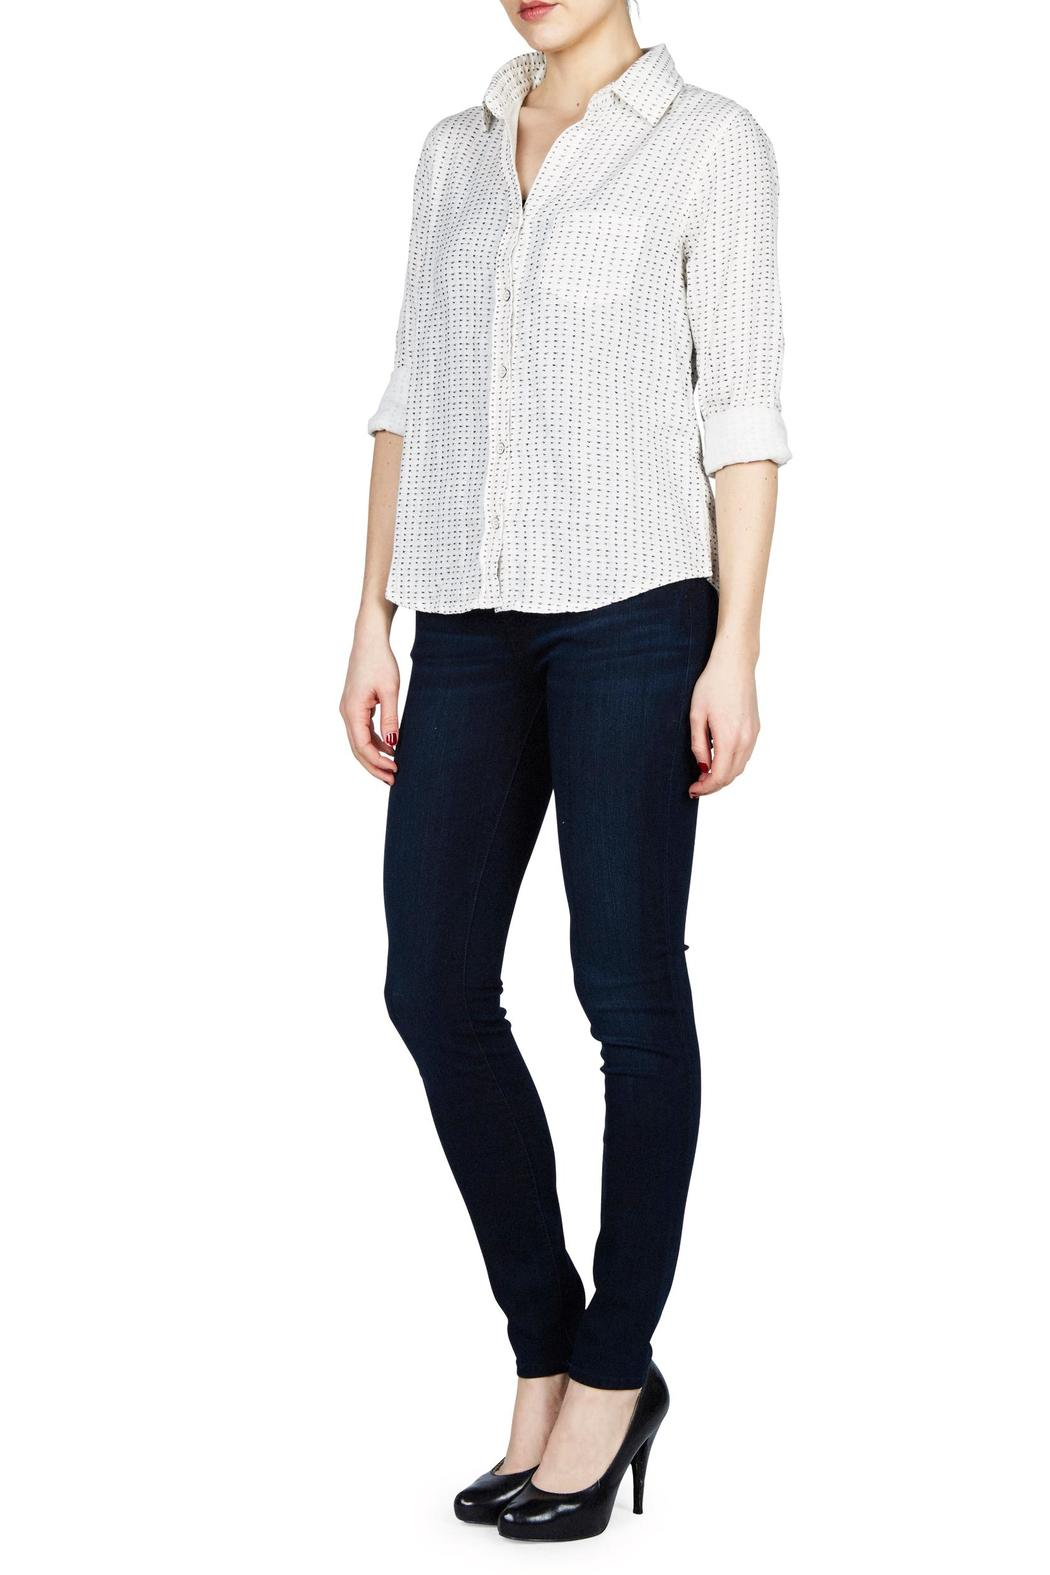 Graham & Spencer Royanna Button Up - Front Cropped Image